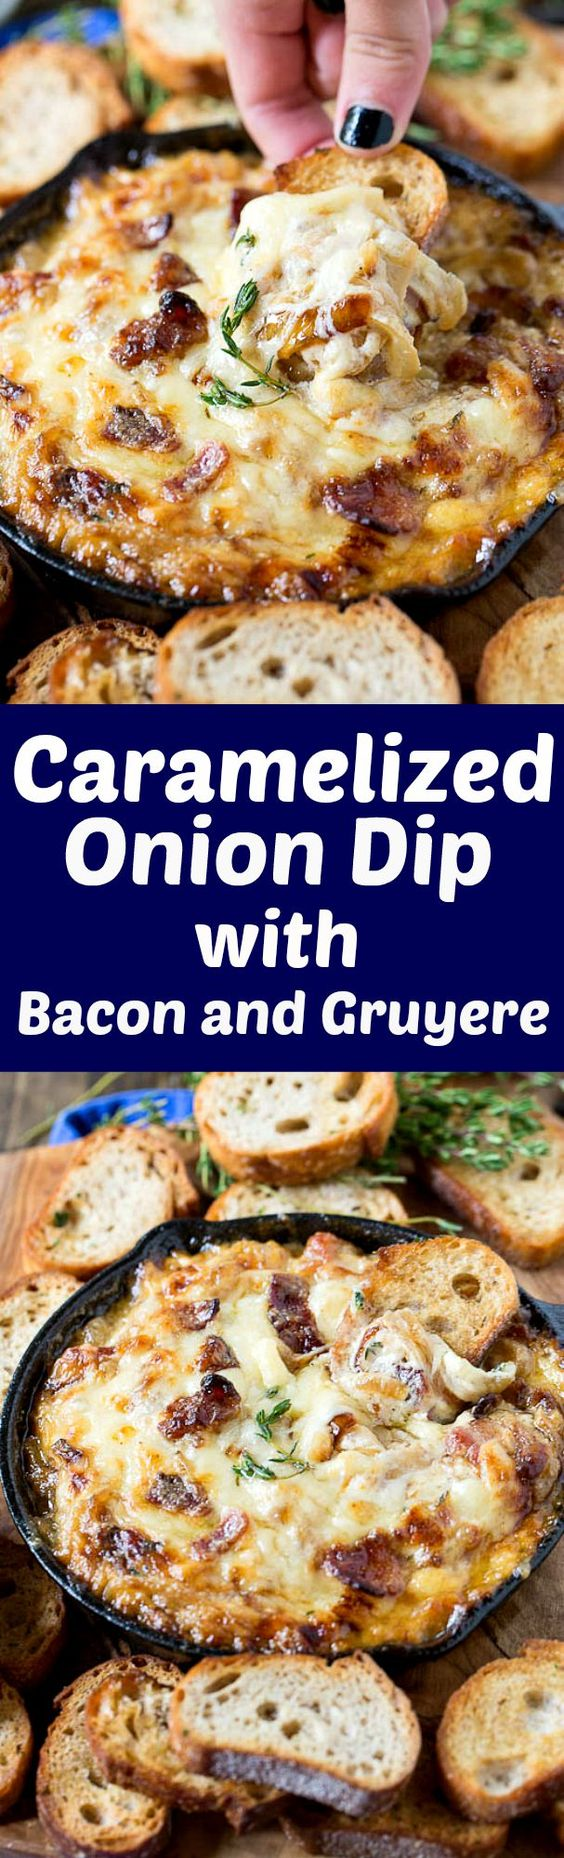 Hot caramelized onion dip with bacon and gruyere. How can you go wrong ...